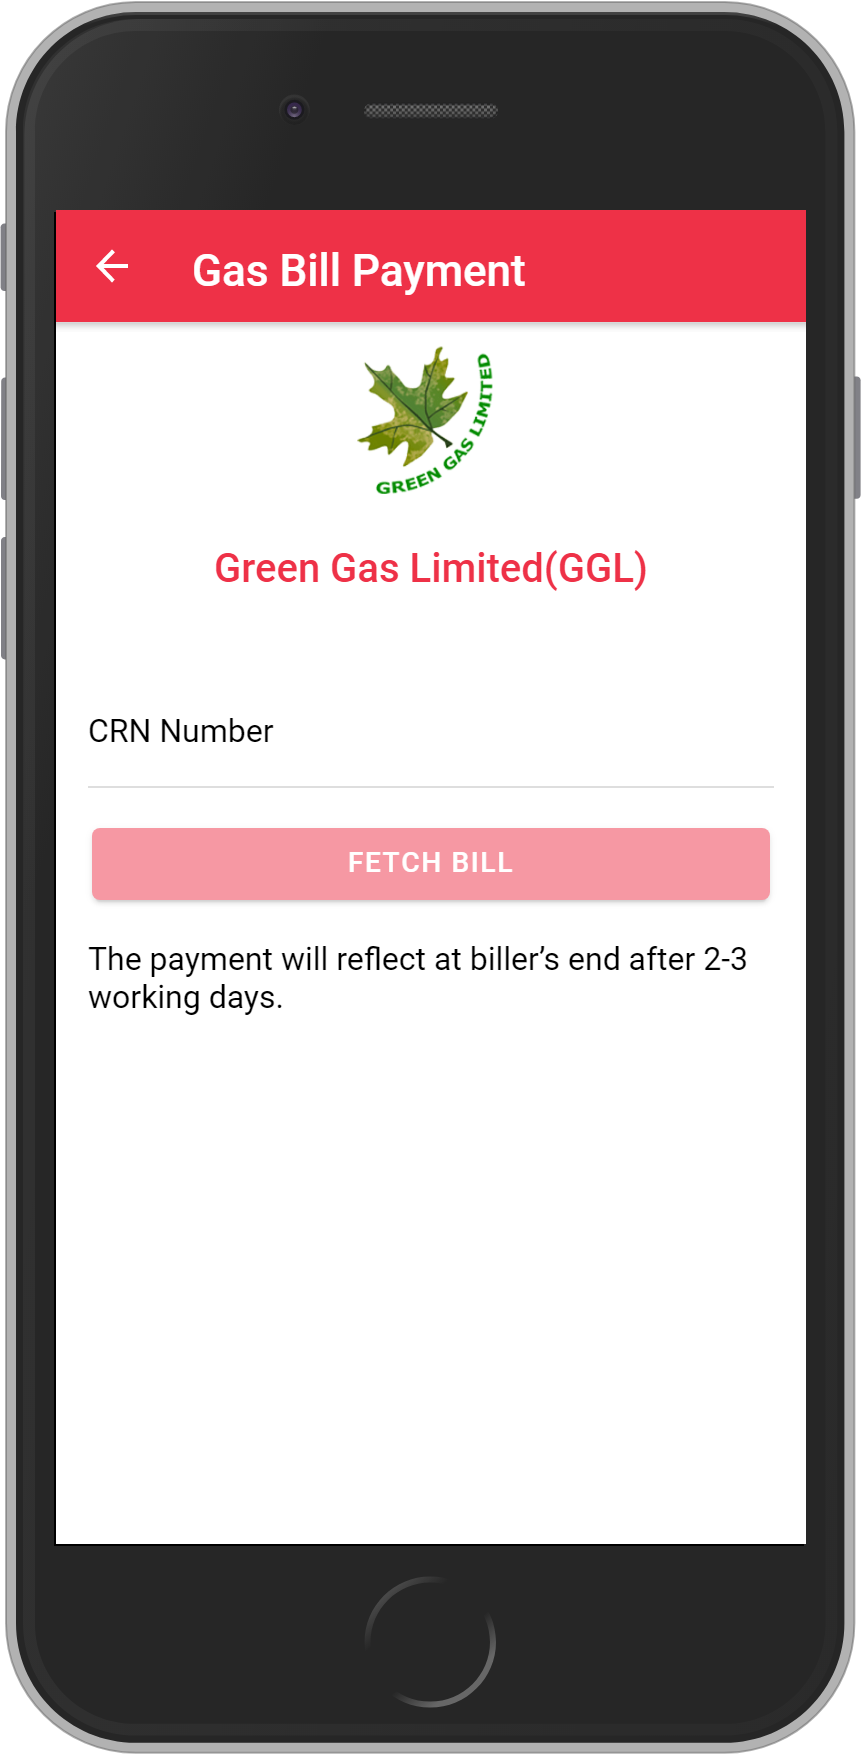 Get UNLIMITED <b>0.1%</b> CASHBACK on Green Gas Limited(GGL) Bill Payment.